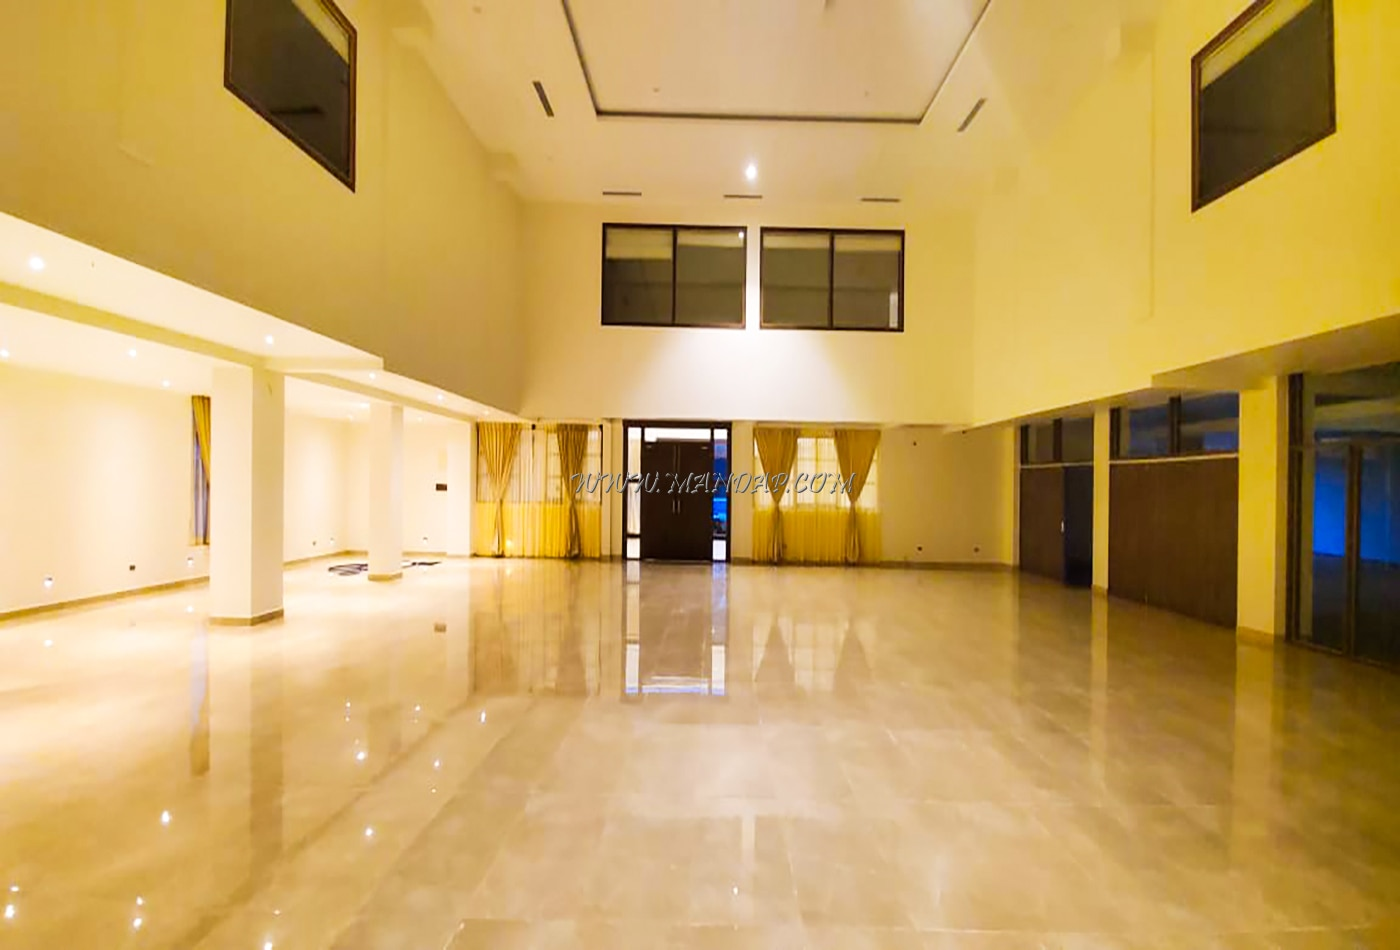 Find the availability of the The Beginning (A/C) in sarjapur road, Bangalore and avail special offers